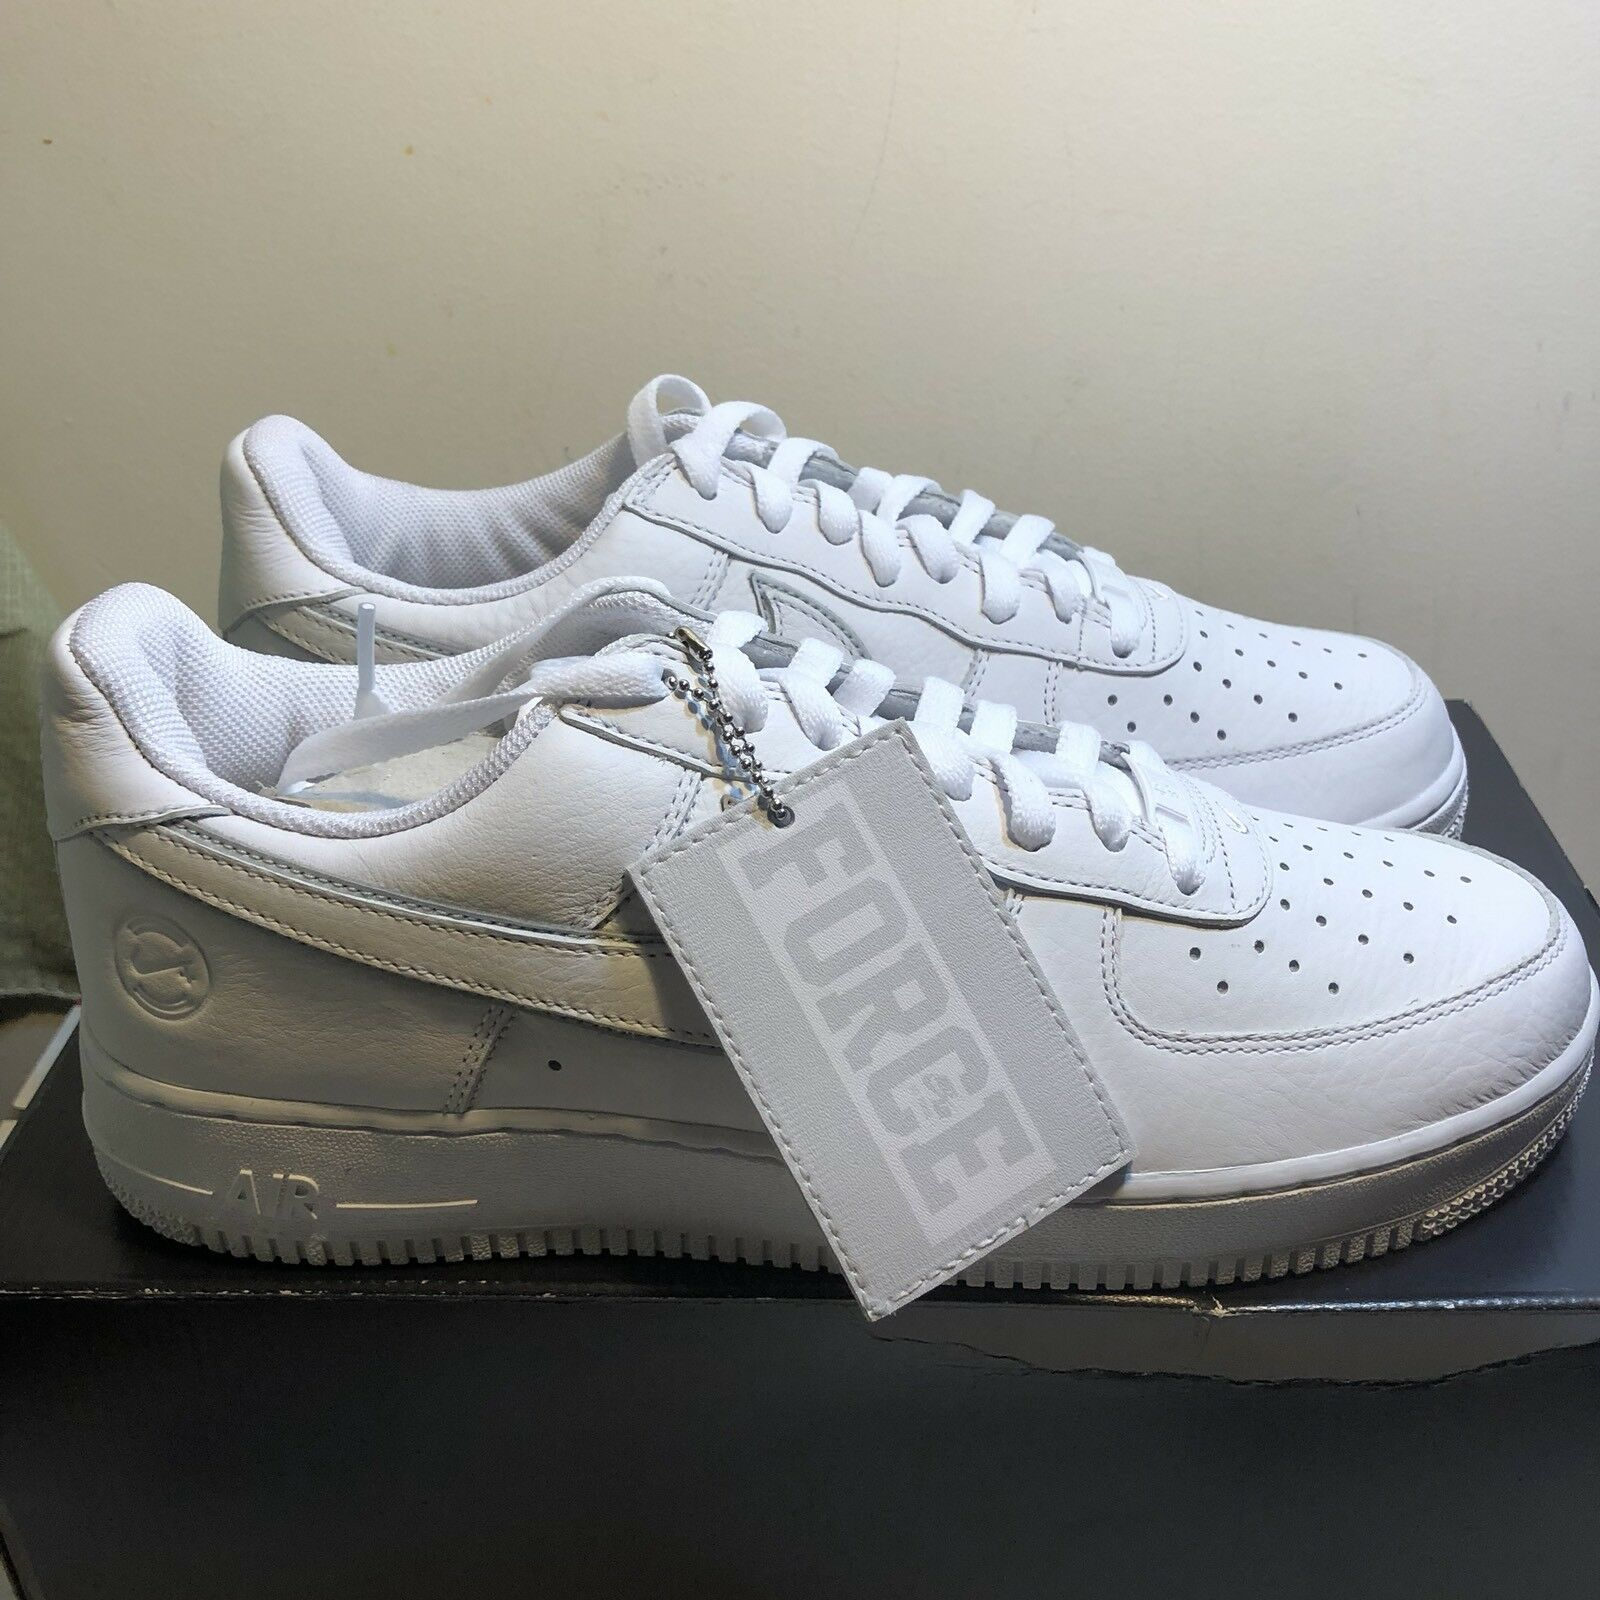 Nuove nike air force 1 nikeconnect qs snkrs noi ao2457 100